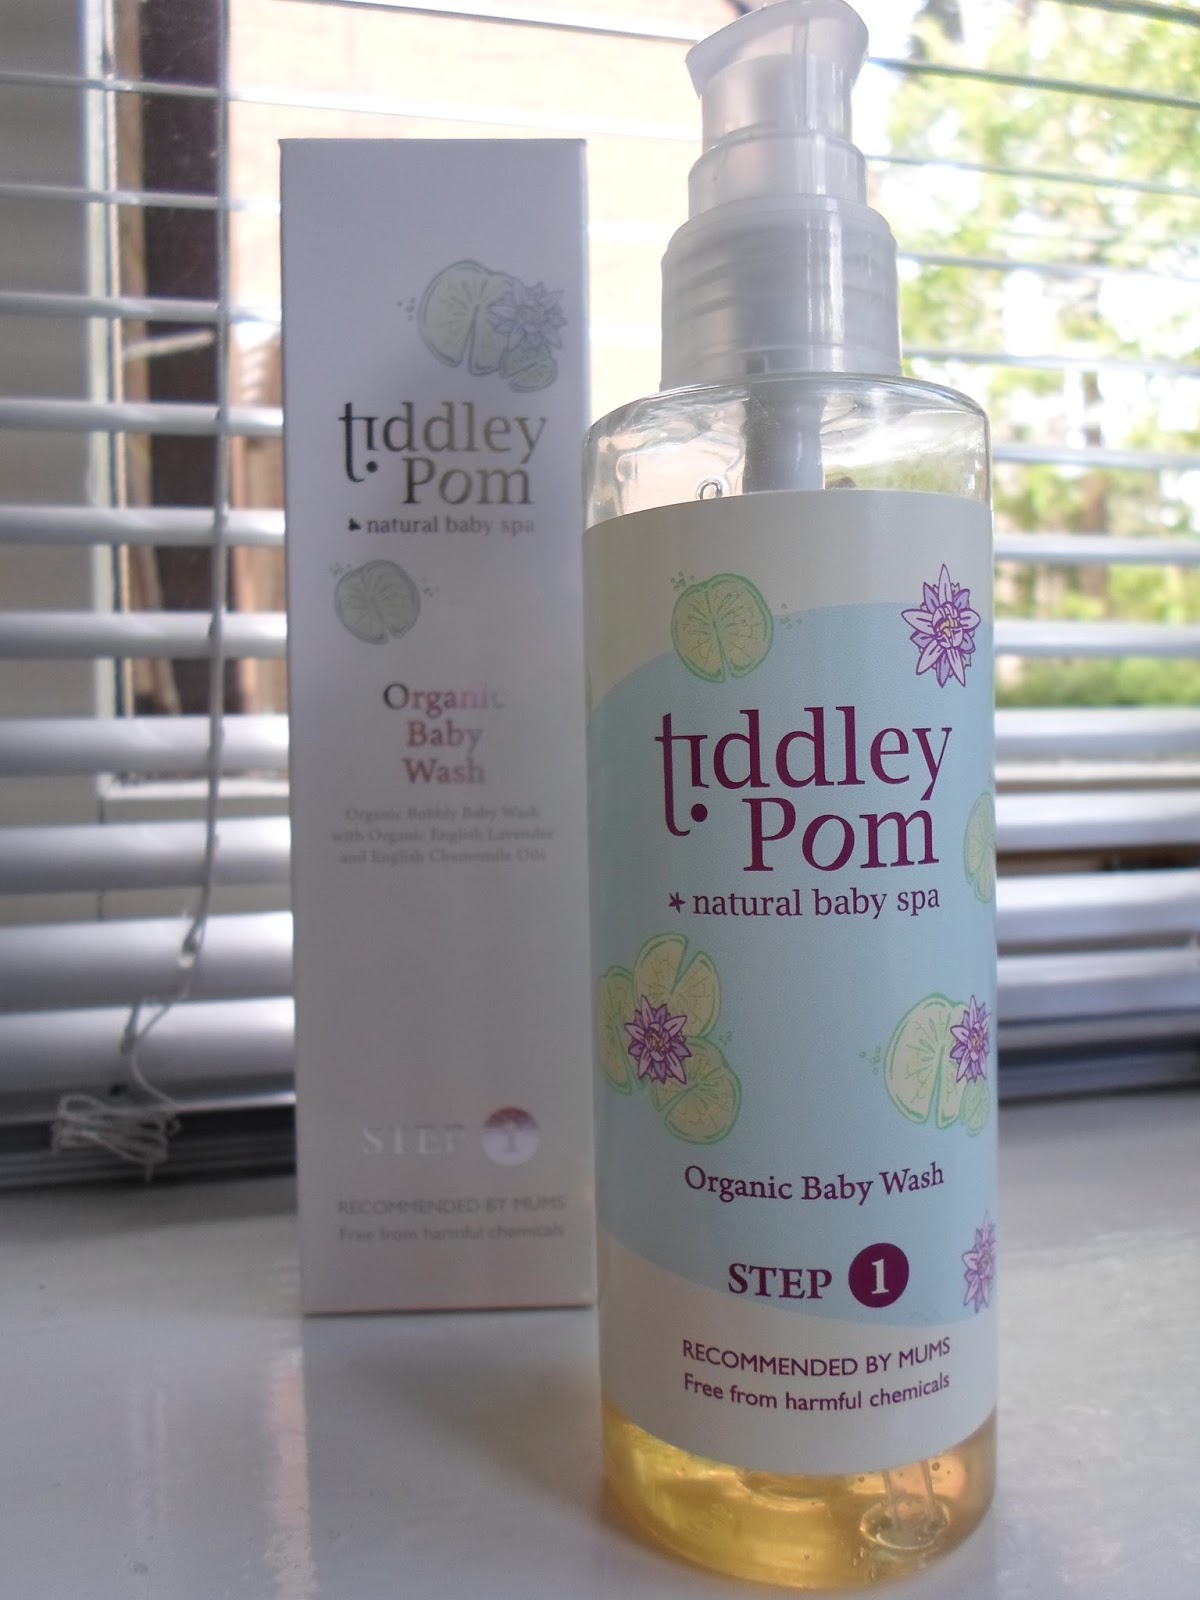 tiddley pom baby wash